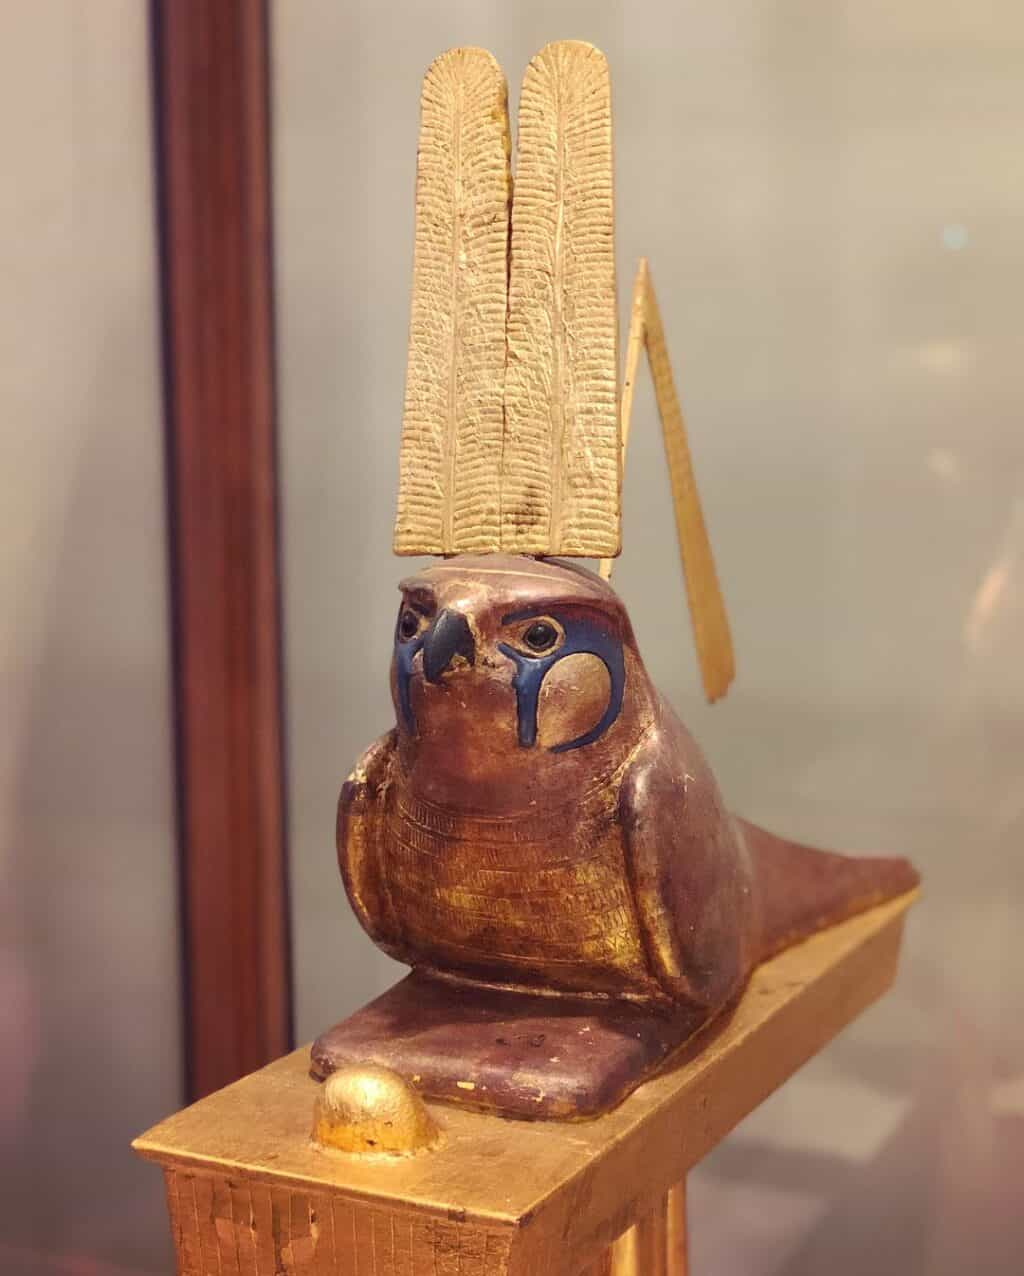 Best Museums in Cairo